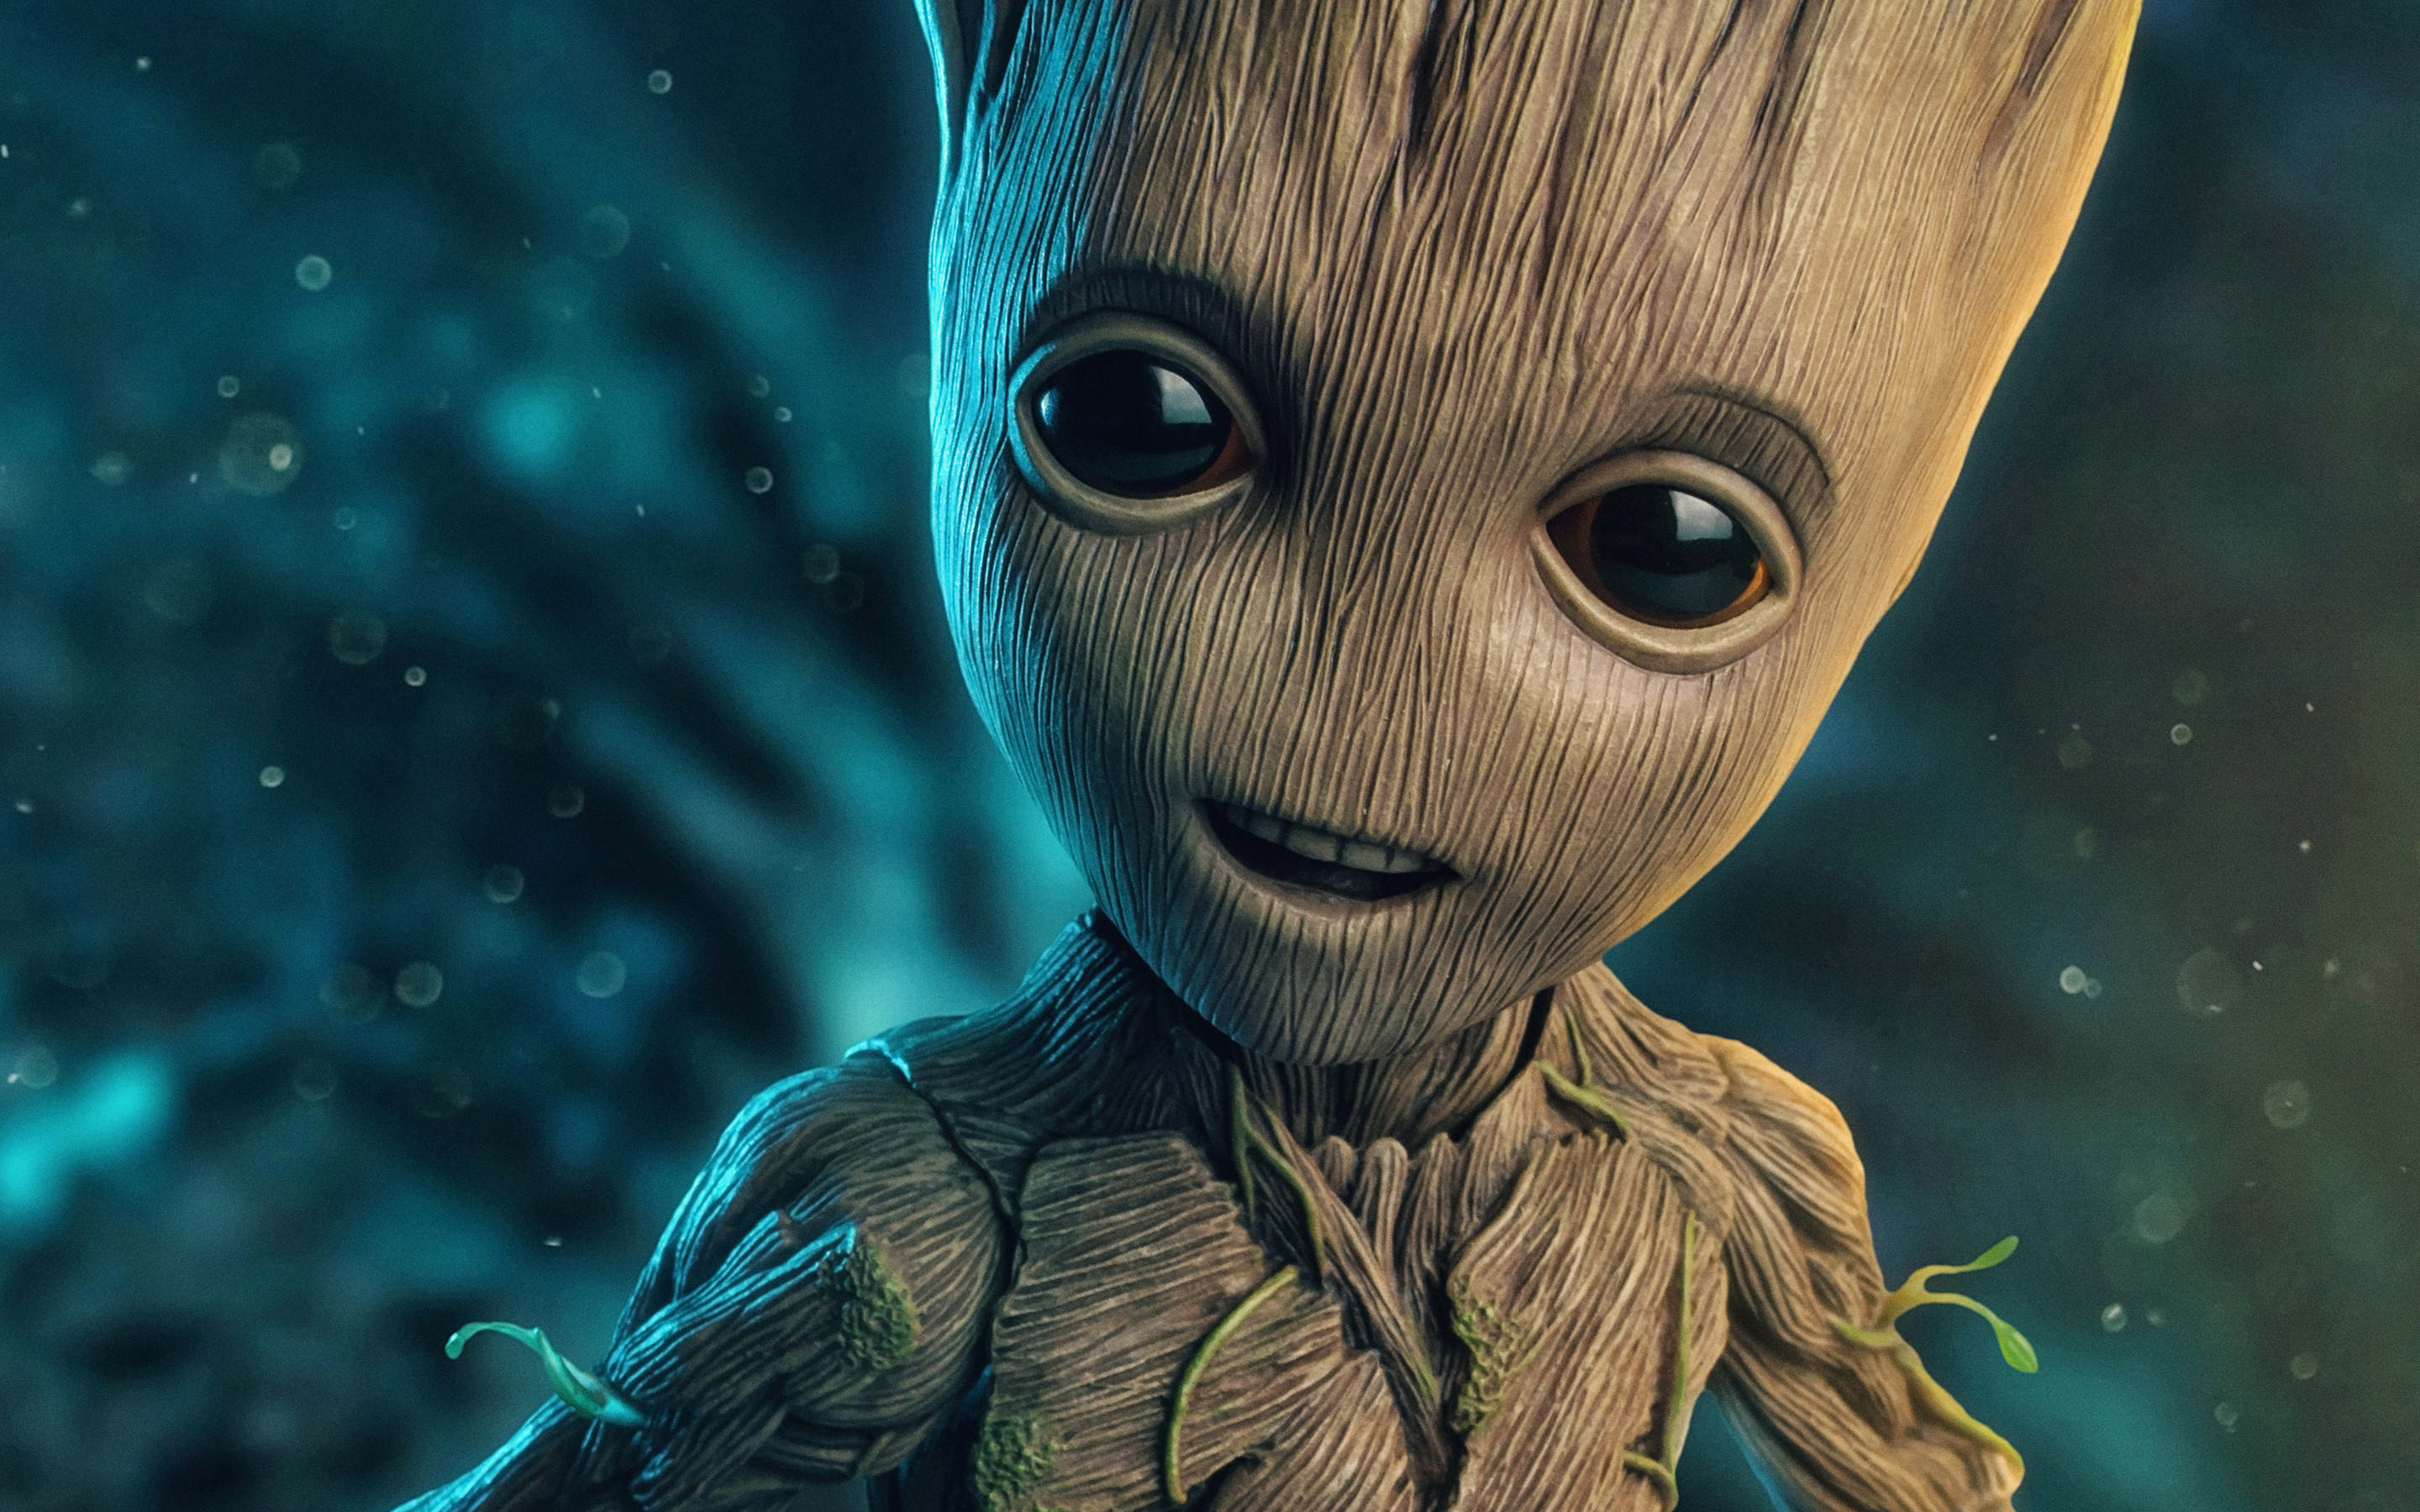 2880x1800 Baby Groot 2018 4k Macbook Pro Retina HD 4k